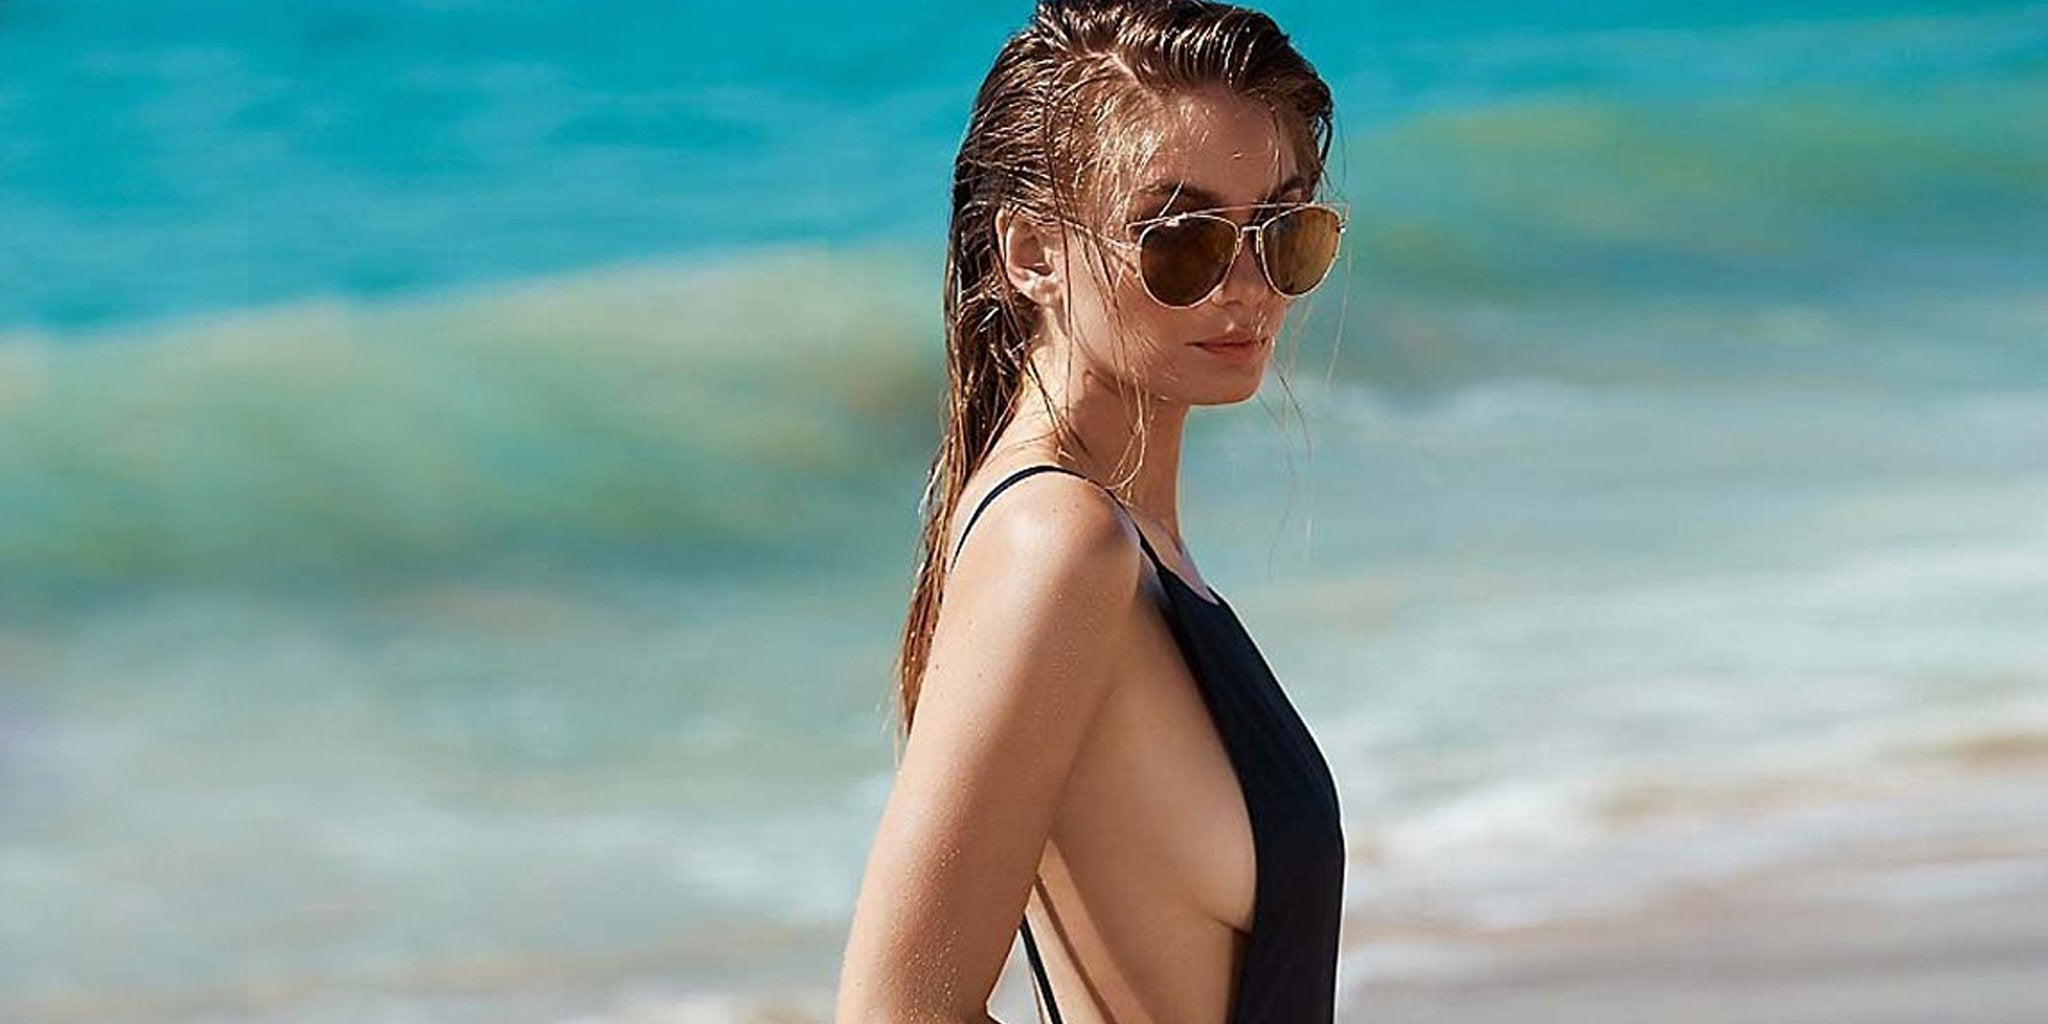 How to Look Good in a One-Piece Swimsuit